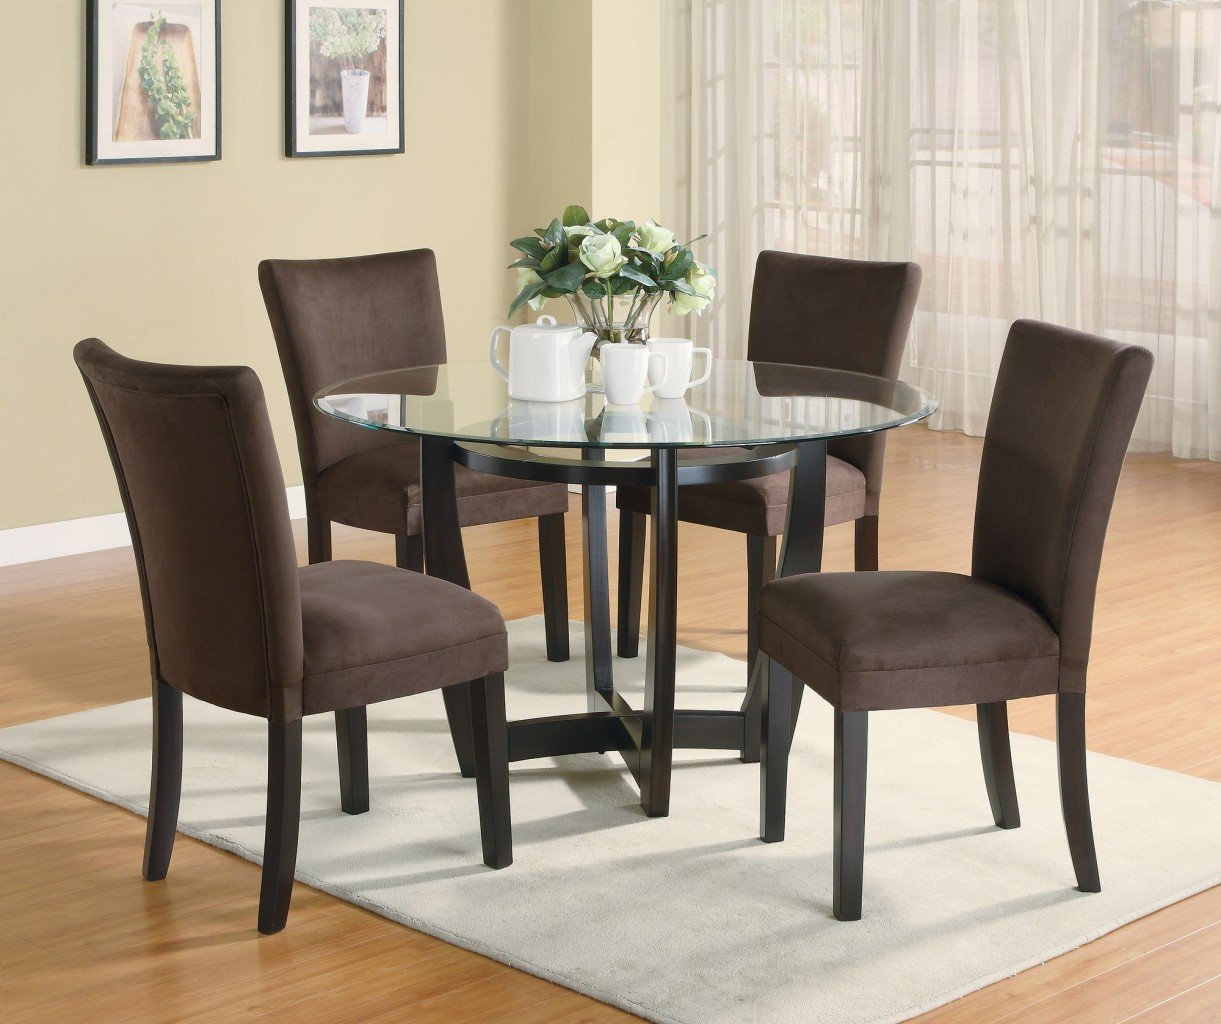 Cheap dining room table sets home furniture design for Photos of dining room sets